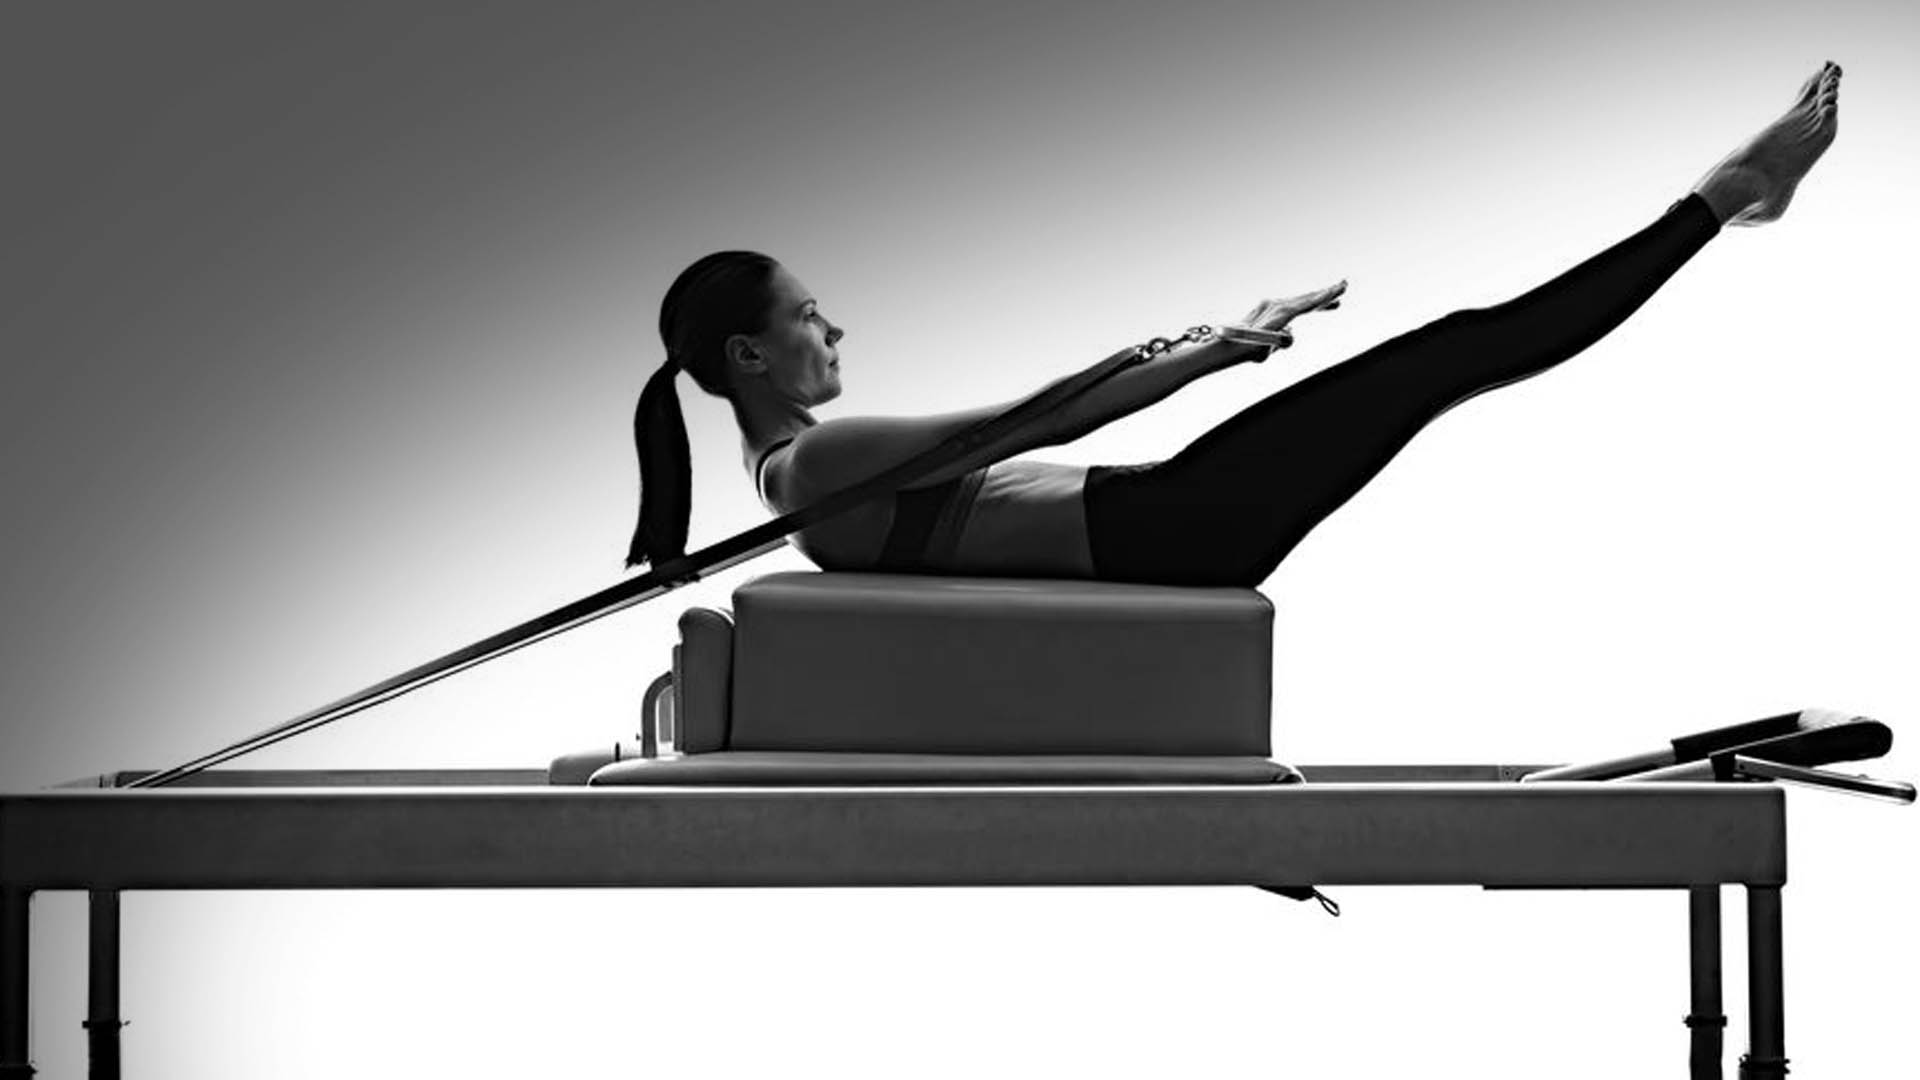 MP Pilates Reformer Trainer Course® seminar banner by MPBalatsinos